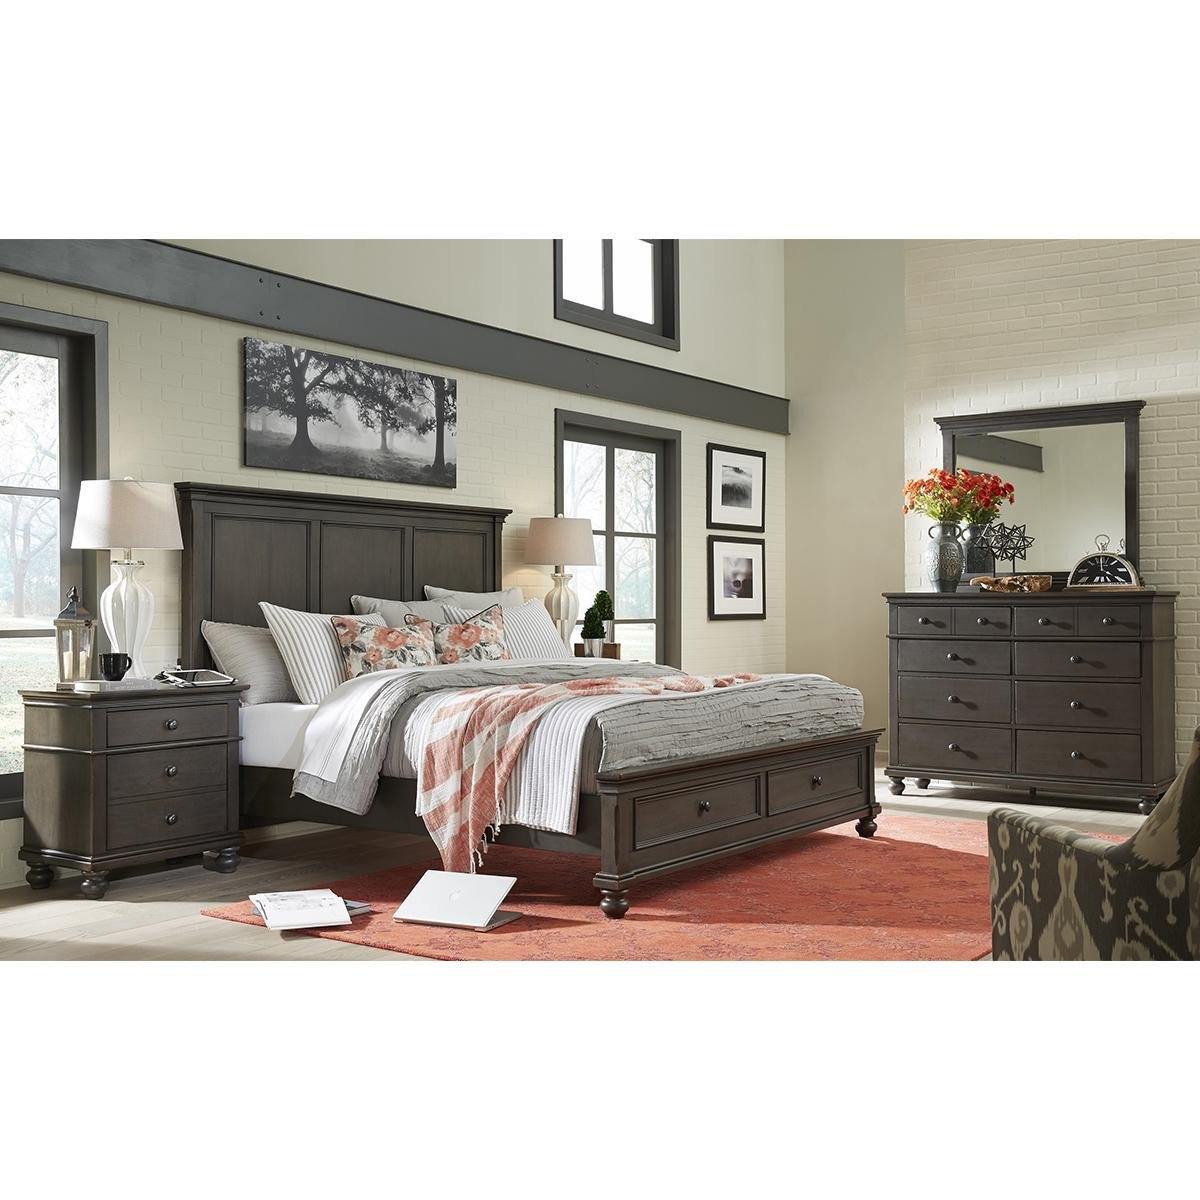 Small Storage Bench for Bedroom Inspirational Riva Ridge Oxford 4 Piece Queen Bedroom Set In Peppercorn